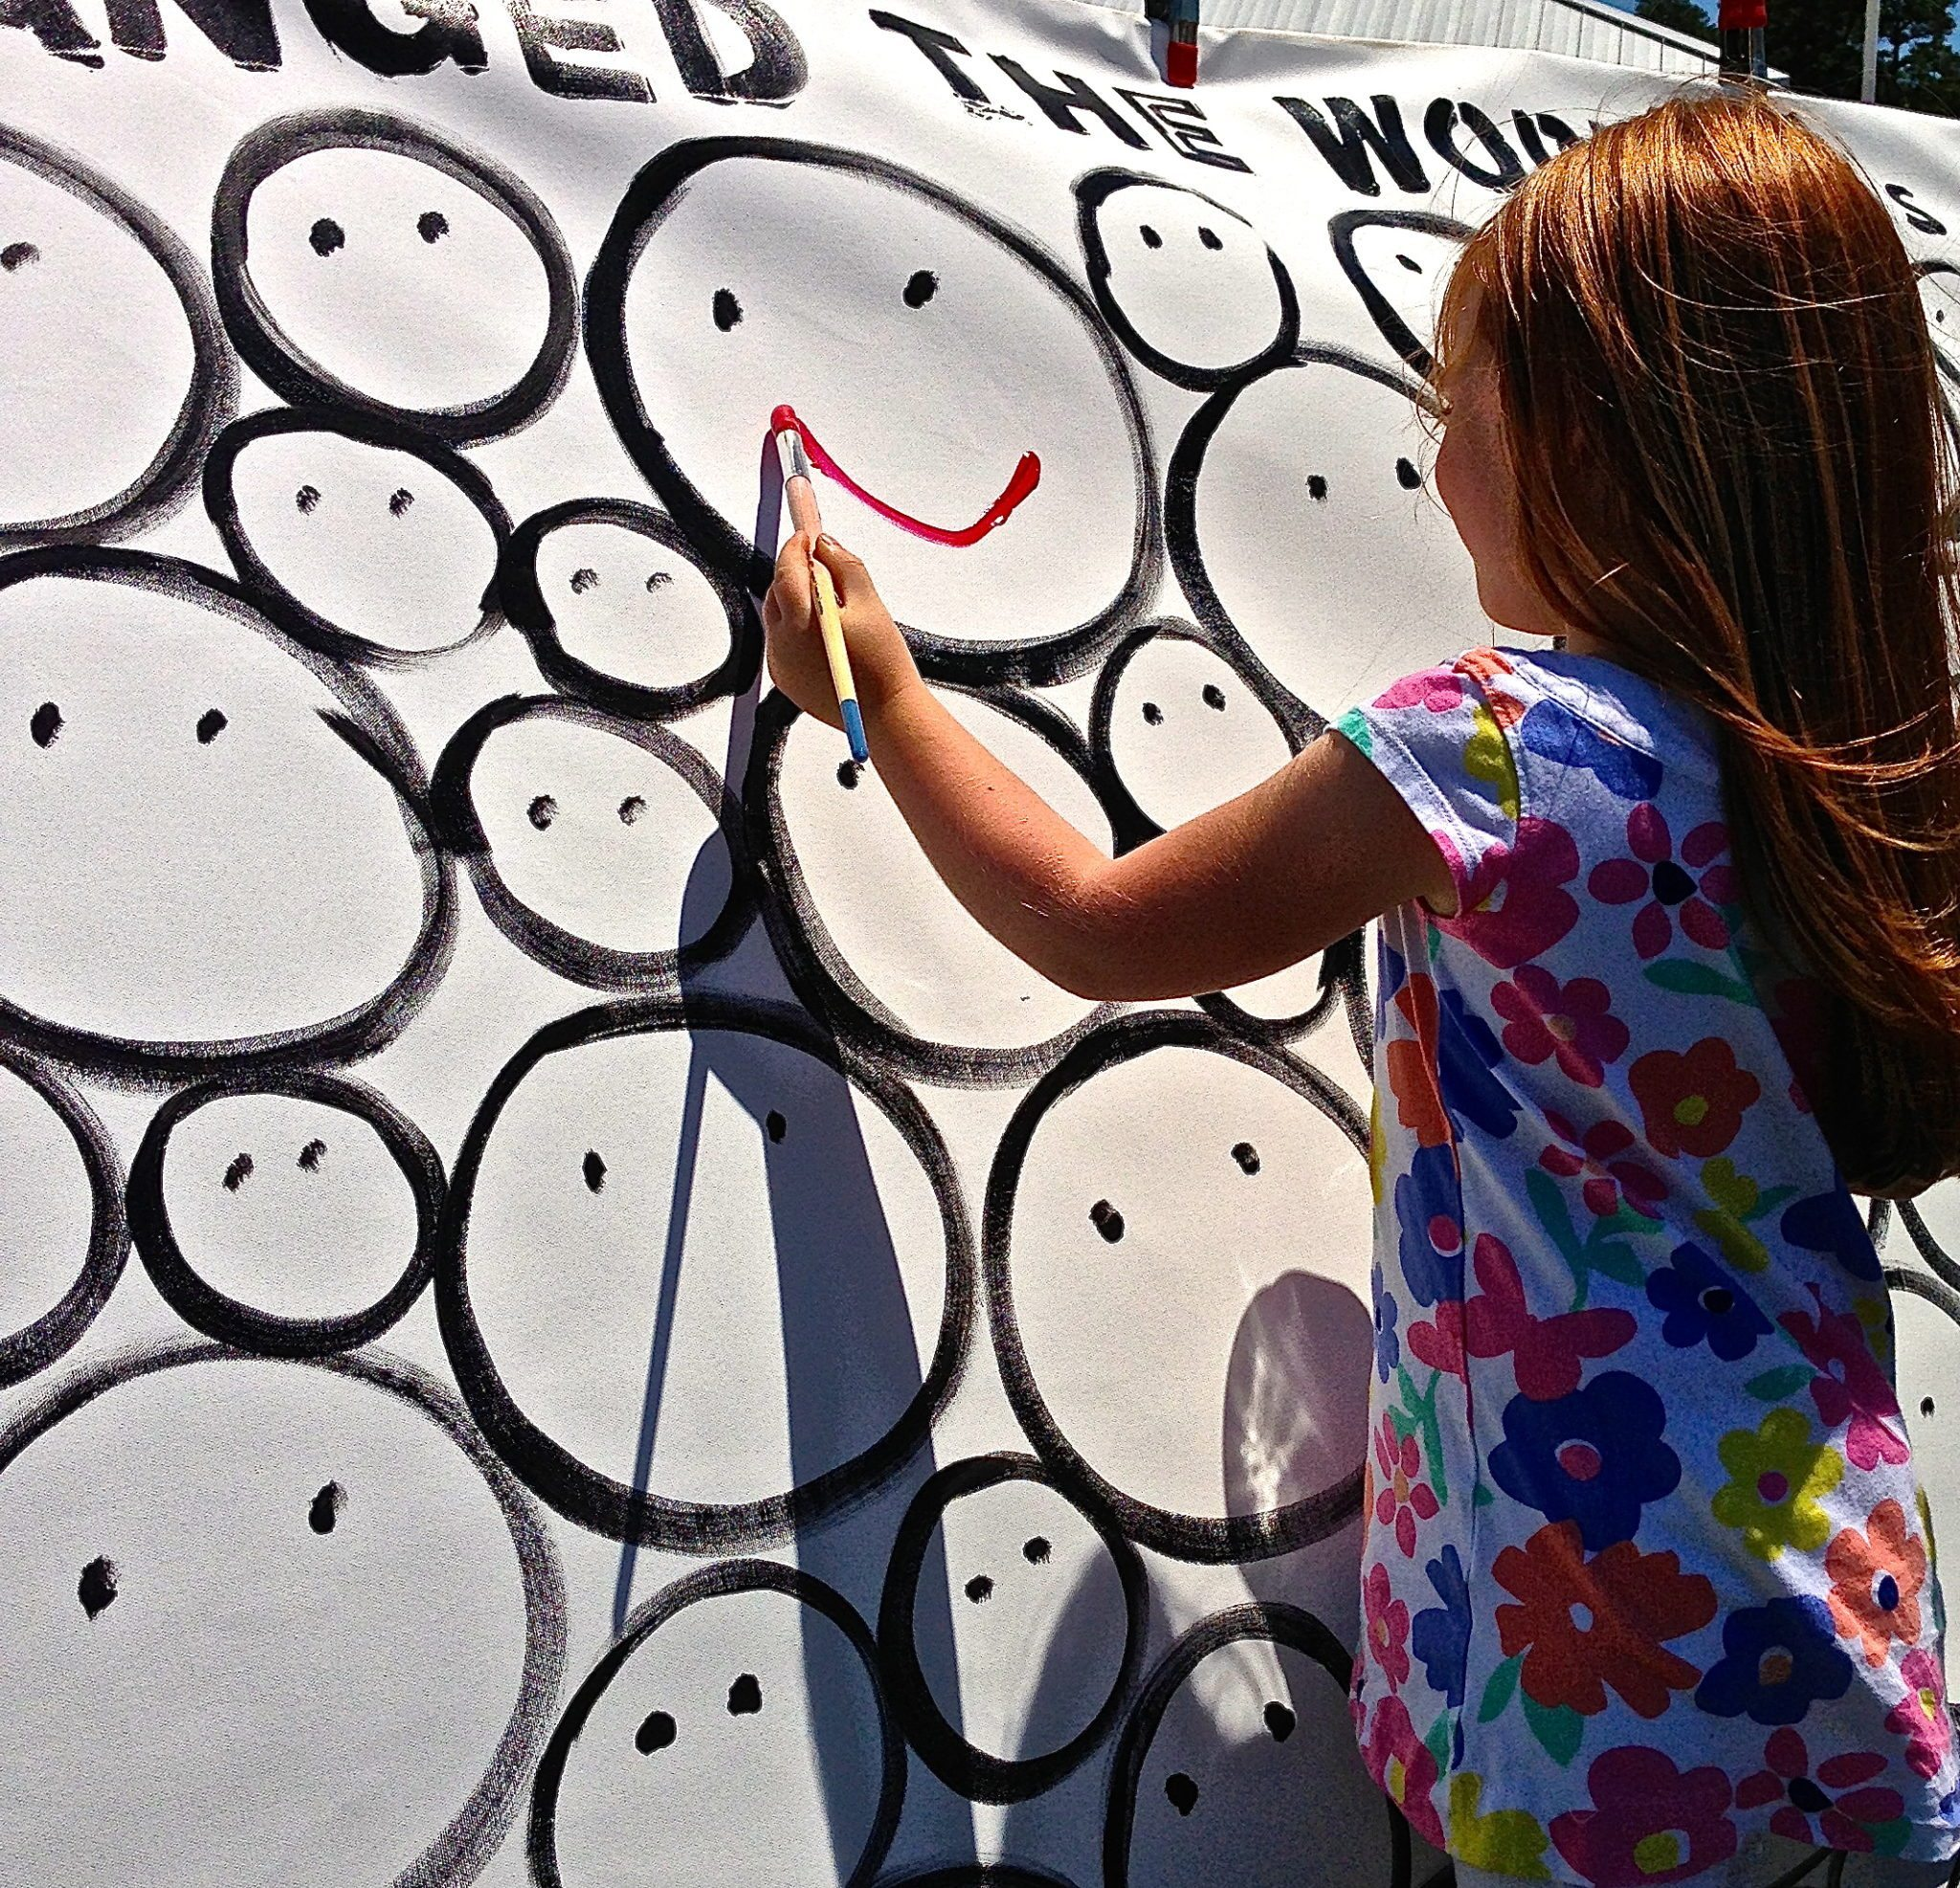 THE SMILE THAT CHANGED THE WORLD (is yours) Installation in Rehoboth Beach…